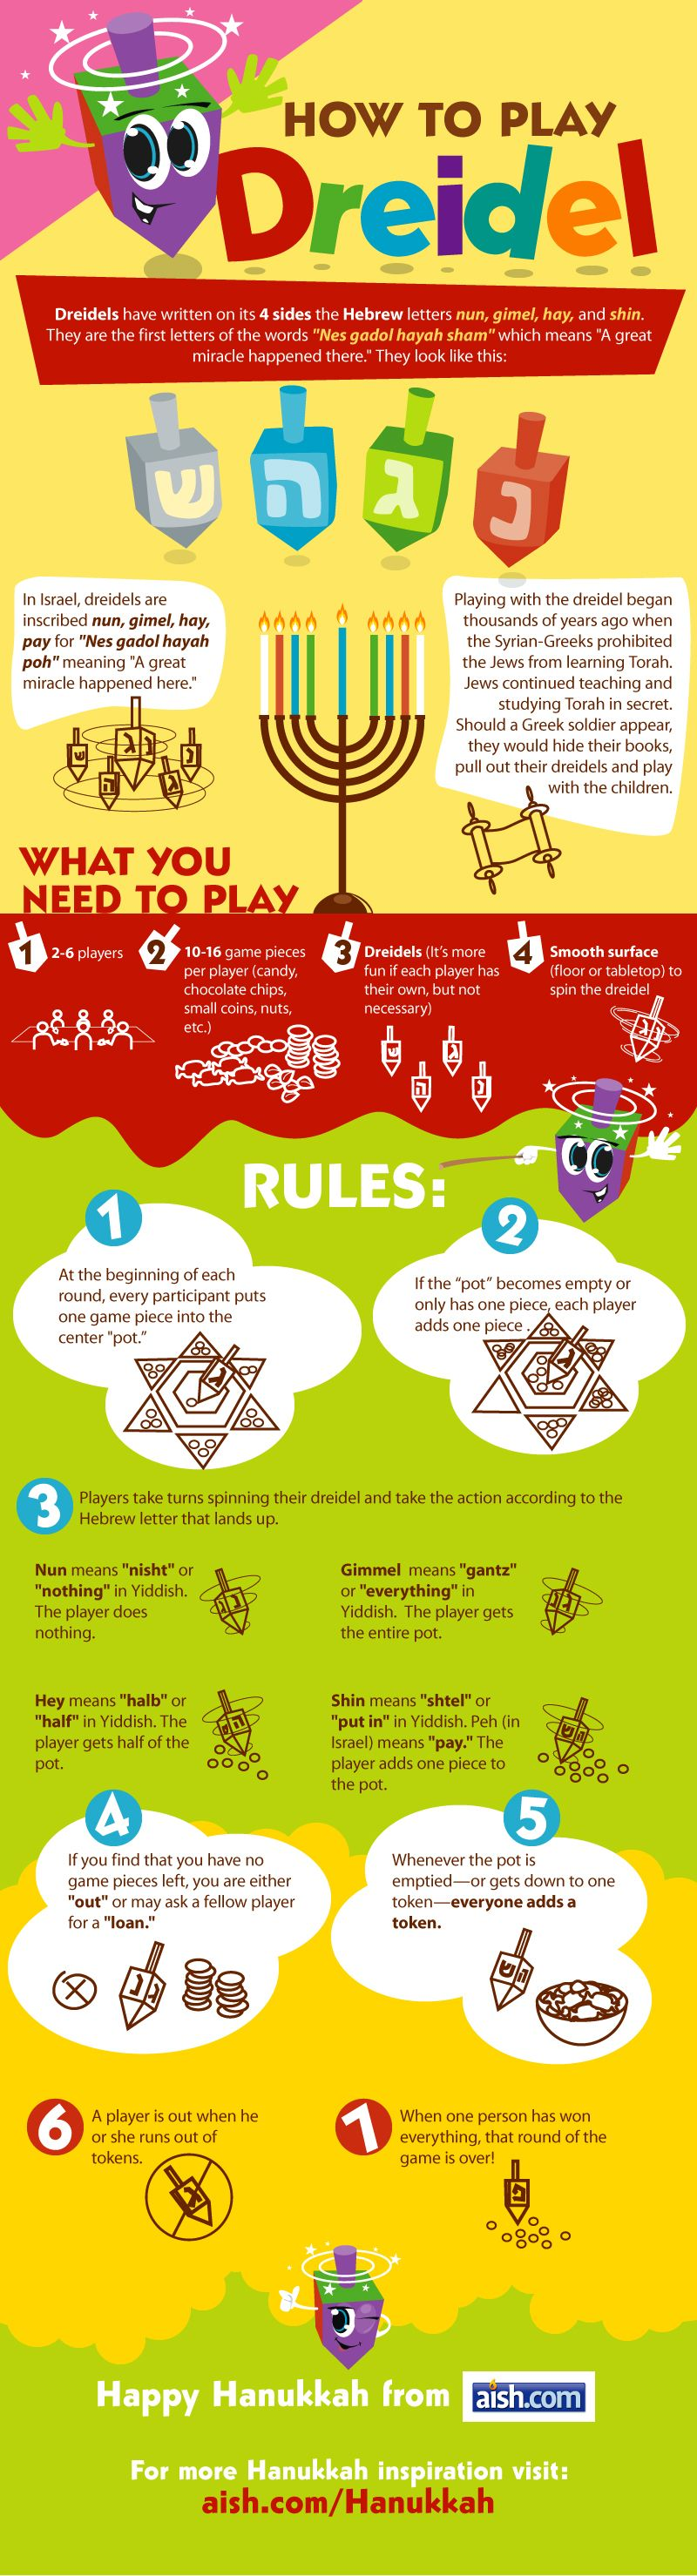 Dreidel 101 Share It With Every Jewish Kid Hanukkah And Other